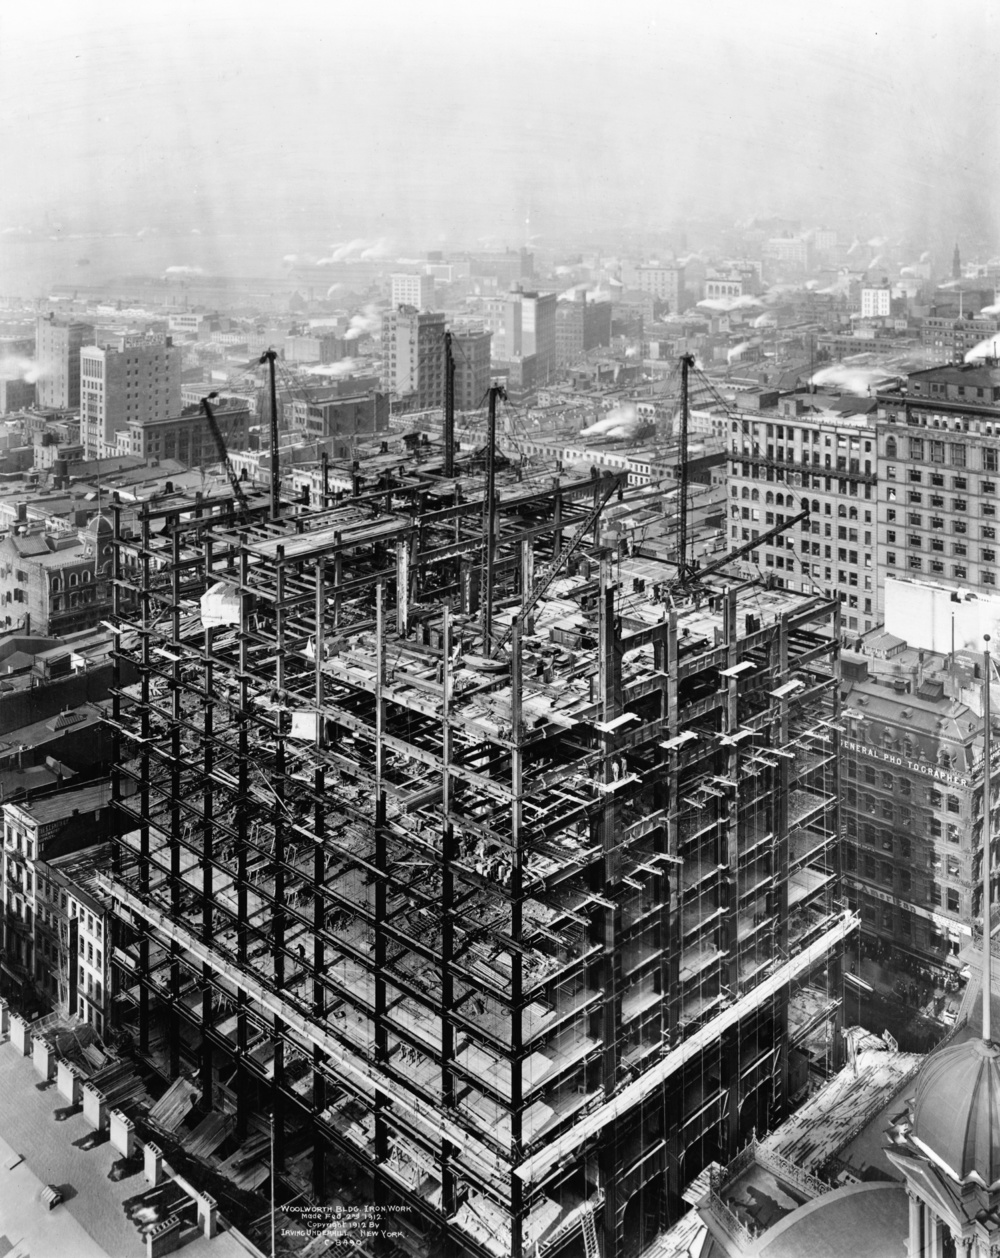 Woolworth_Building_2_Feb._1912_LC-USZ62-105567.jpg